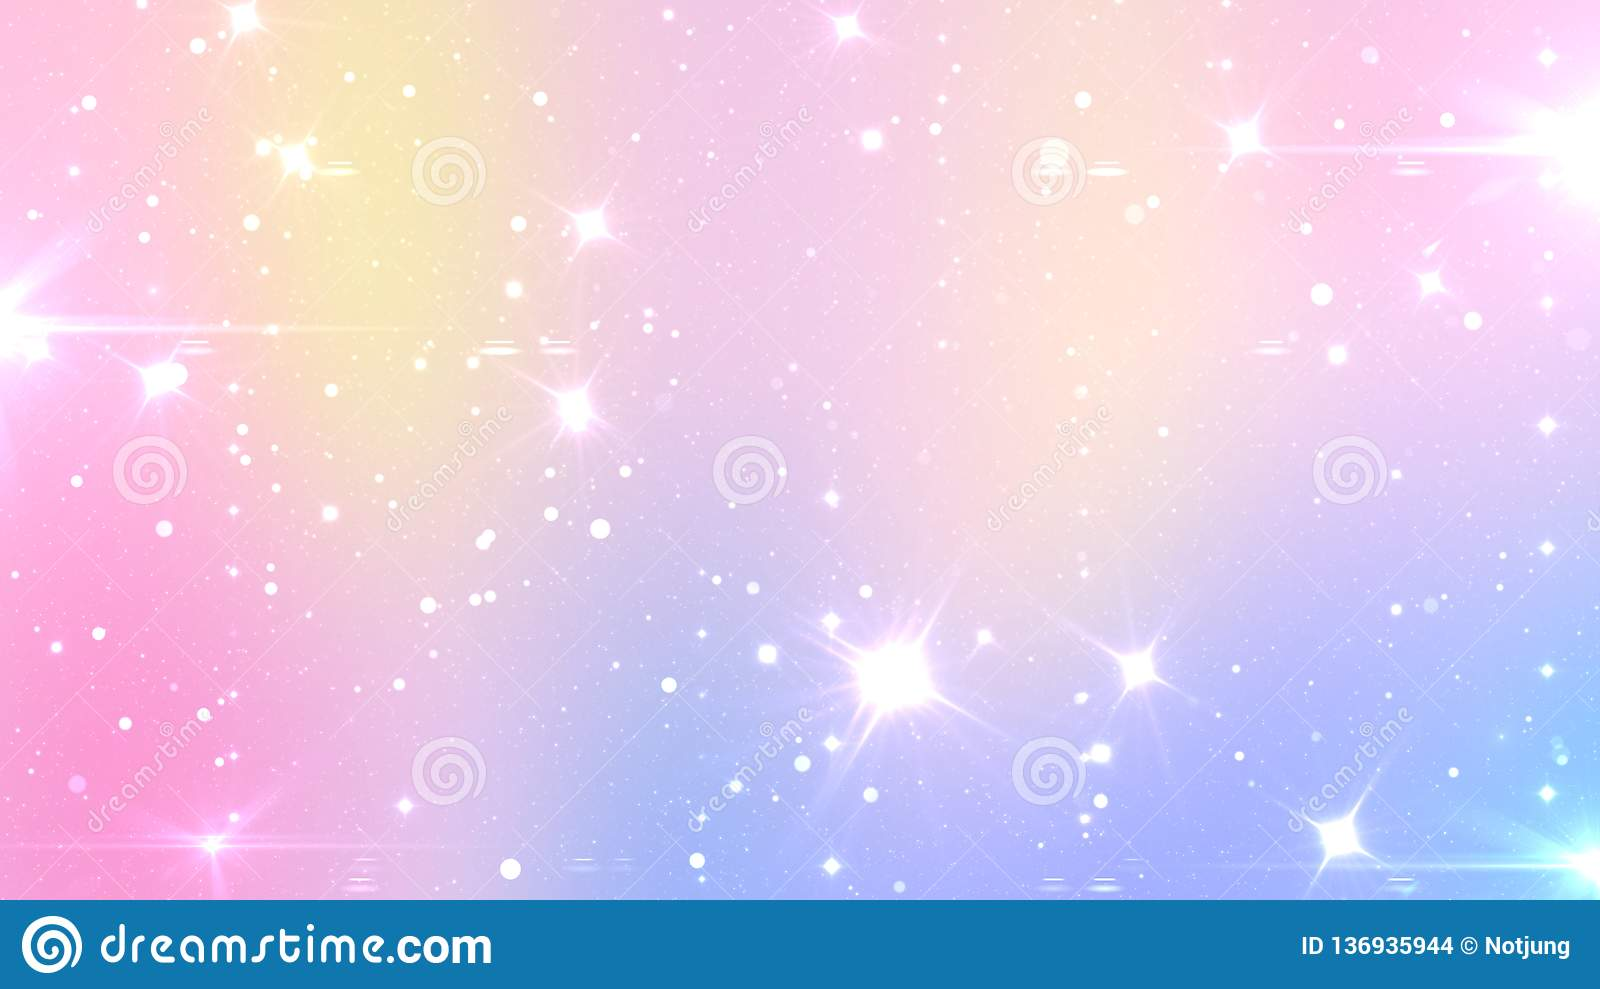 Abstract Pastel Fairy background with rainbow mesh. Kawaii universe banner in princess colors. Fantasy gradient backdrop with